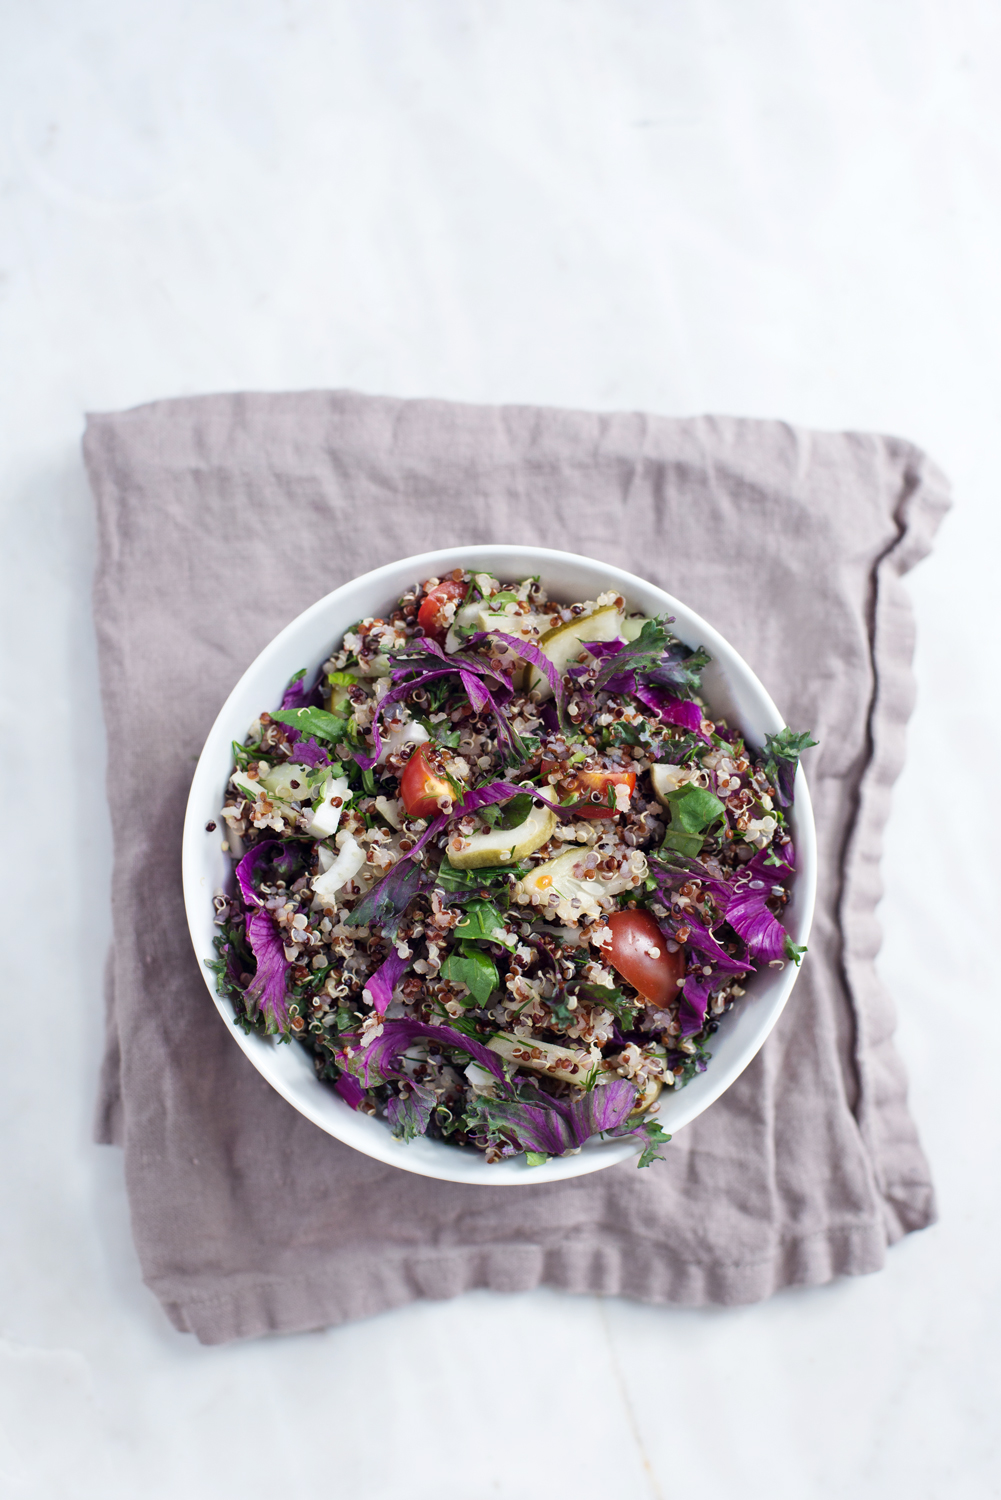 Quinoa Salad with Kale and Pickles